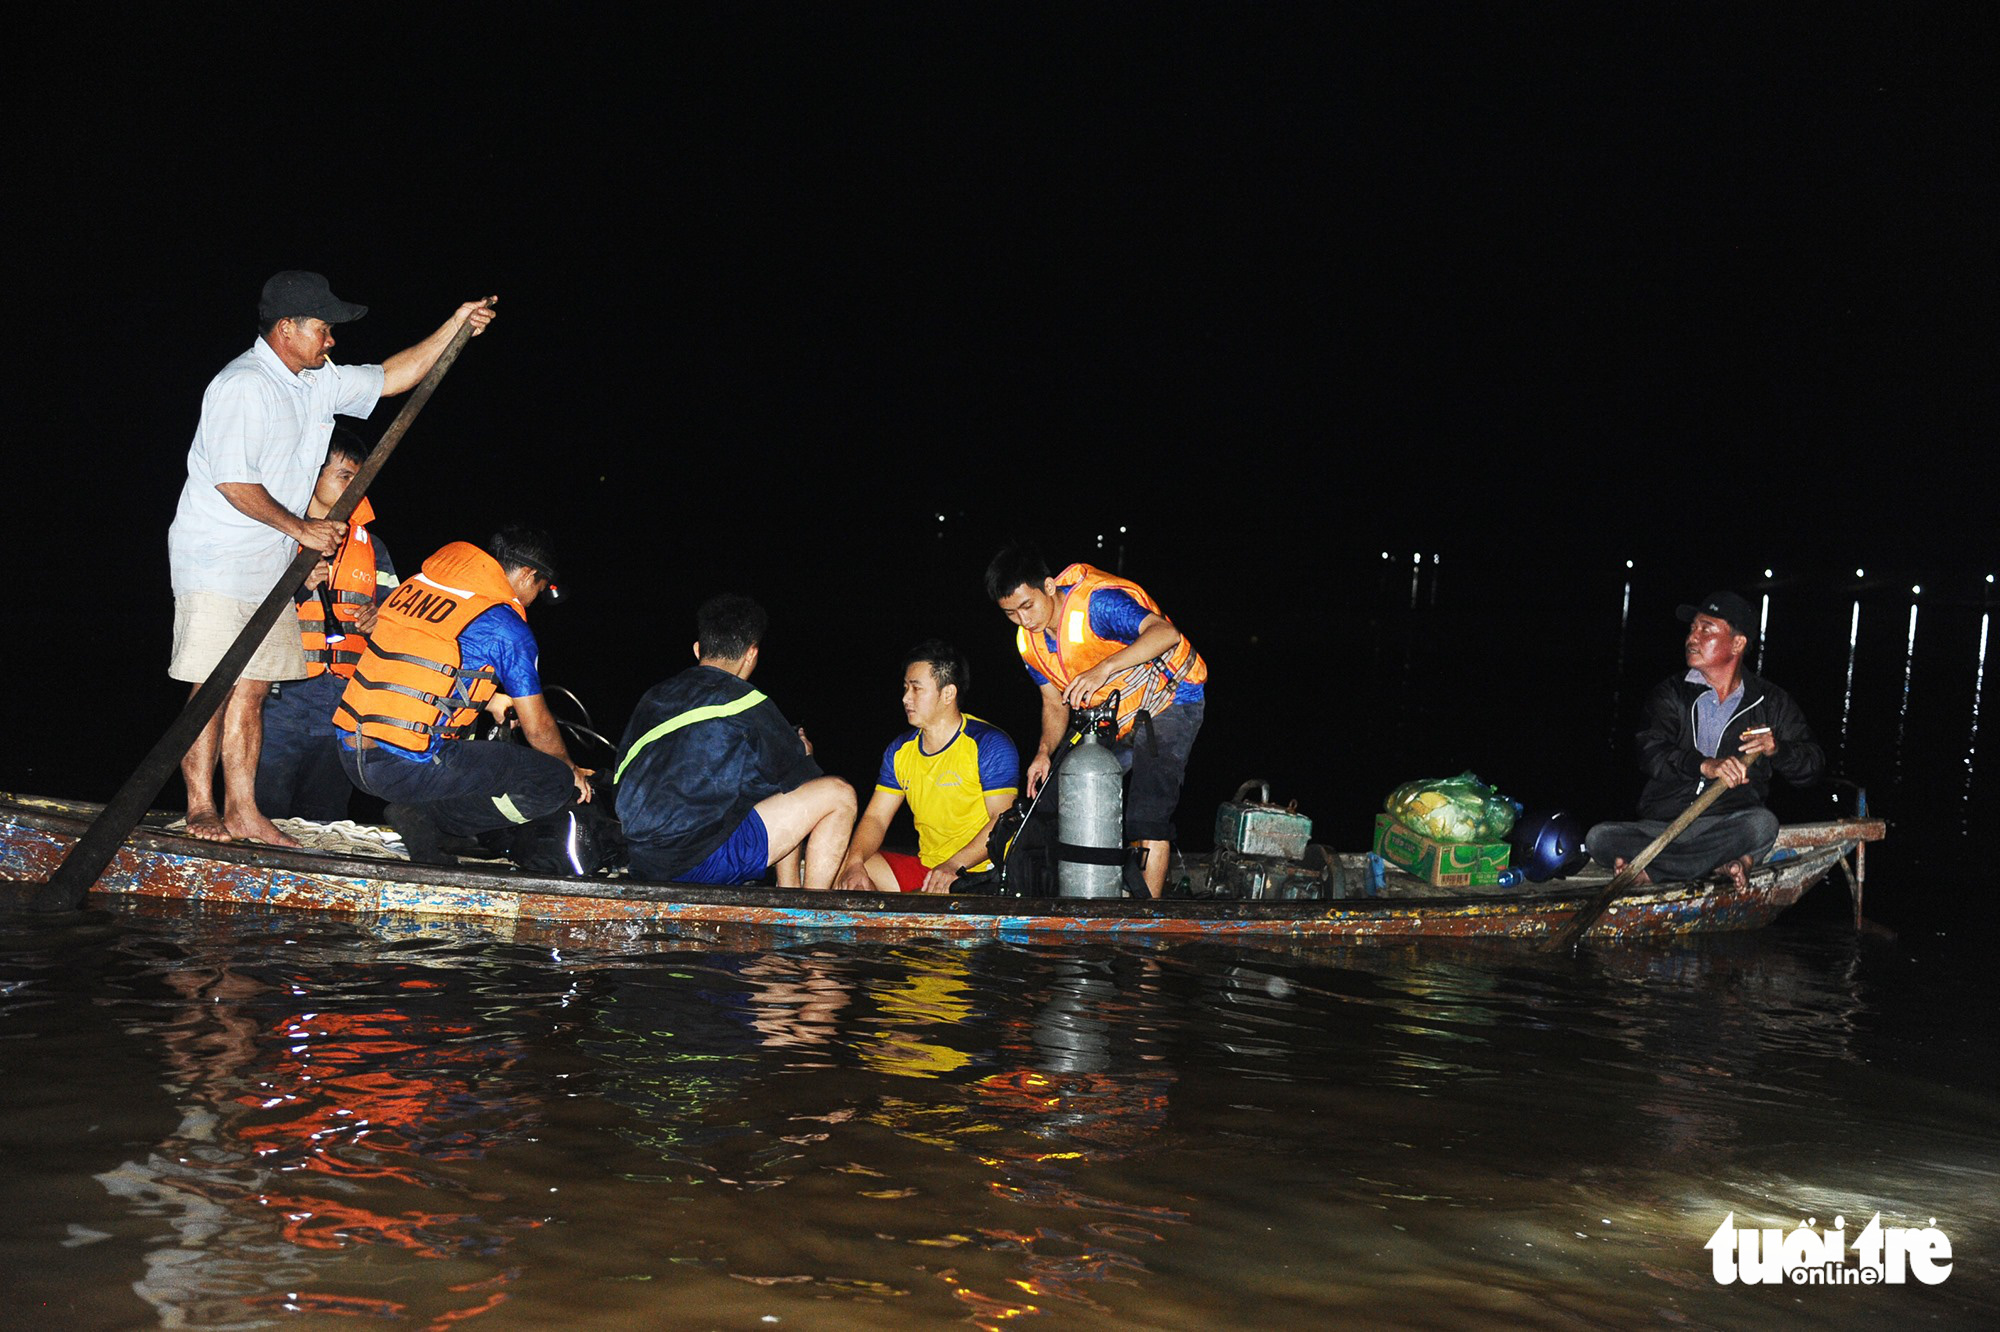 Six relatives drown as wherry capsizes in central Vietnam